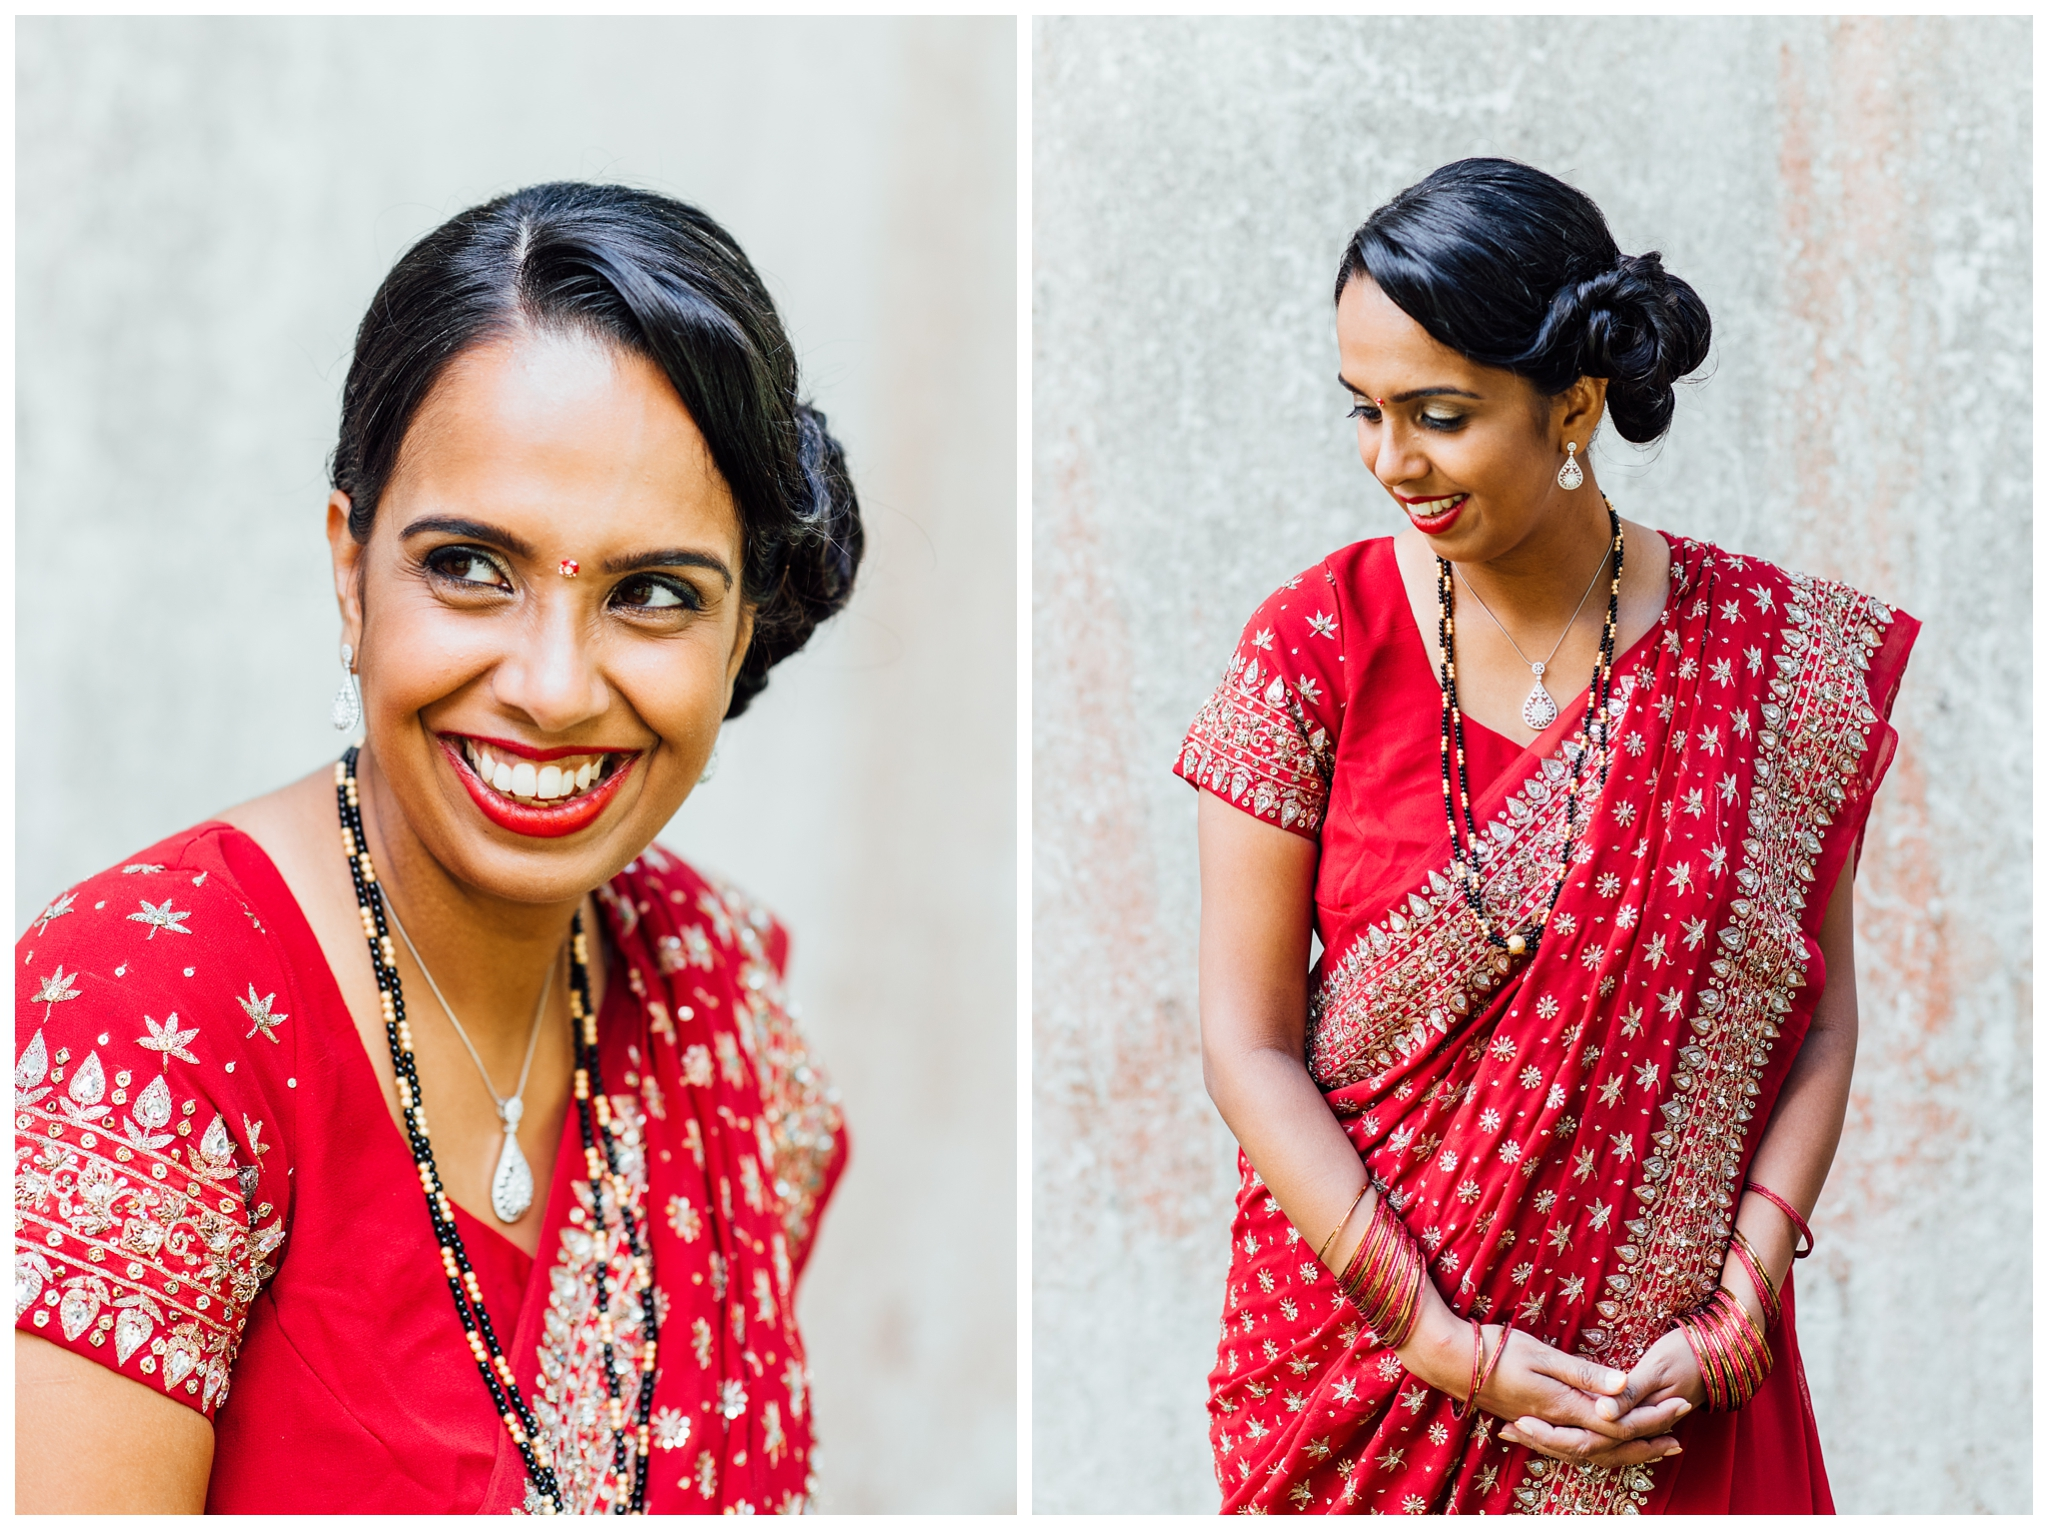 Rich&Dhikshana_Lupton_House_Devon_Hindu_English_Fushion_Wedding_0015.jpg